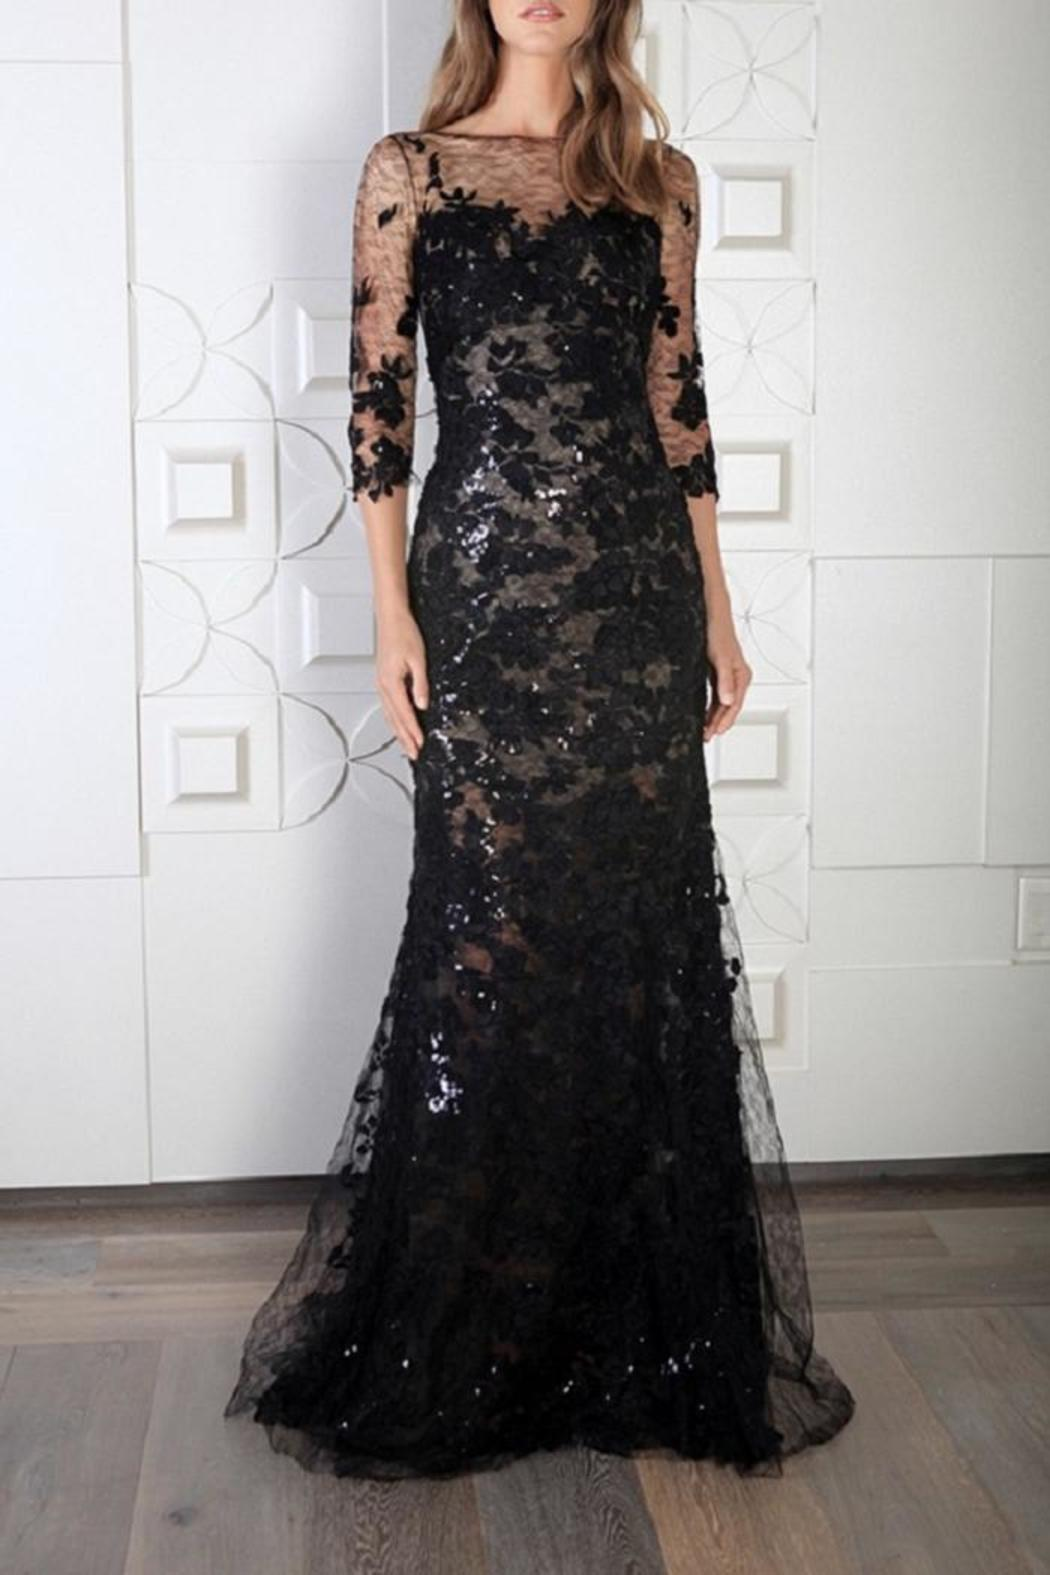 Rene Ruiz 3/4 Sleeve Gown from New Jersey by District 5 Boutique ...